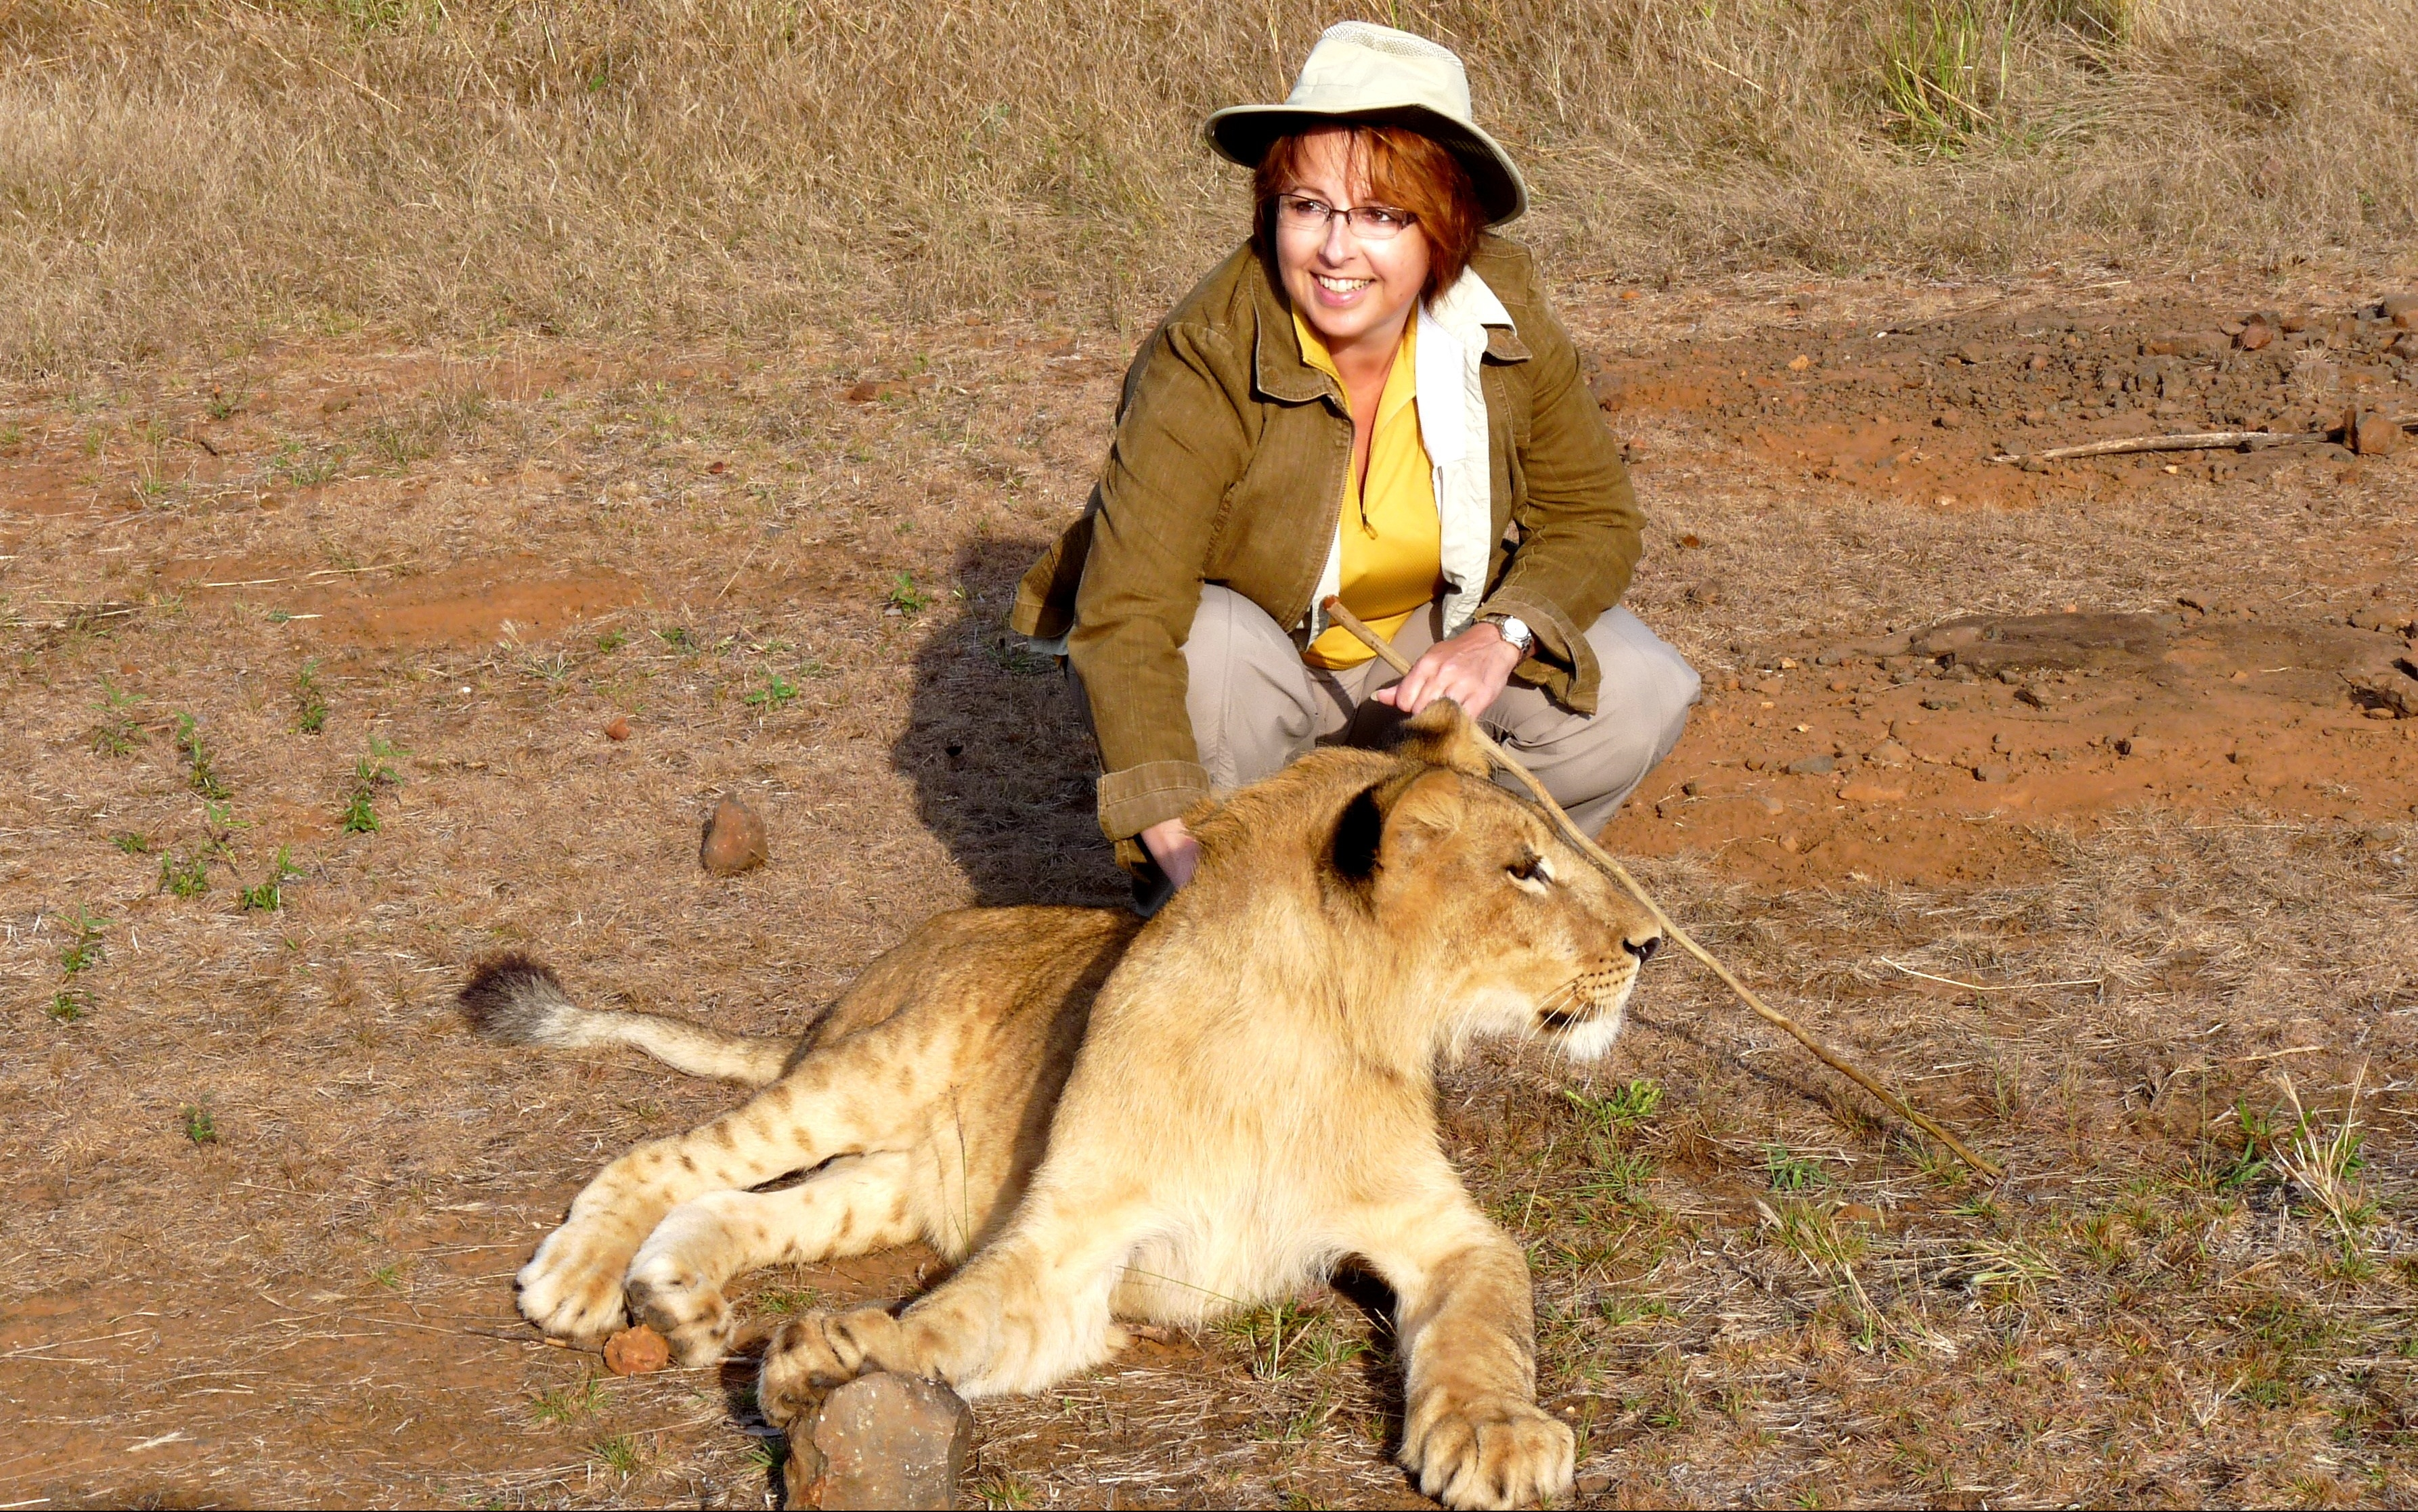 Erica with one of her lion buddies in Zimbabwe